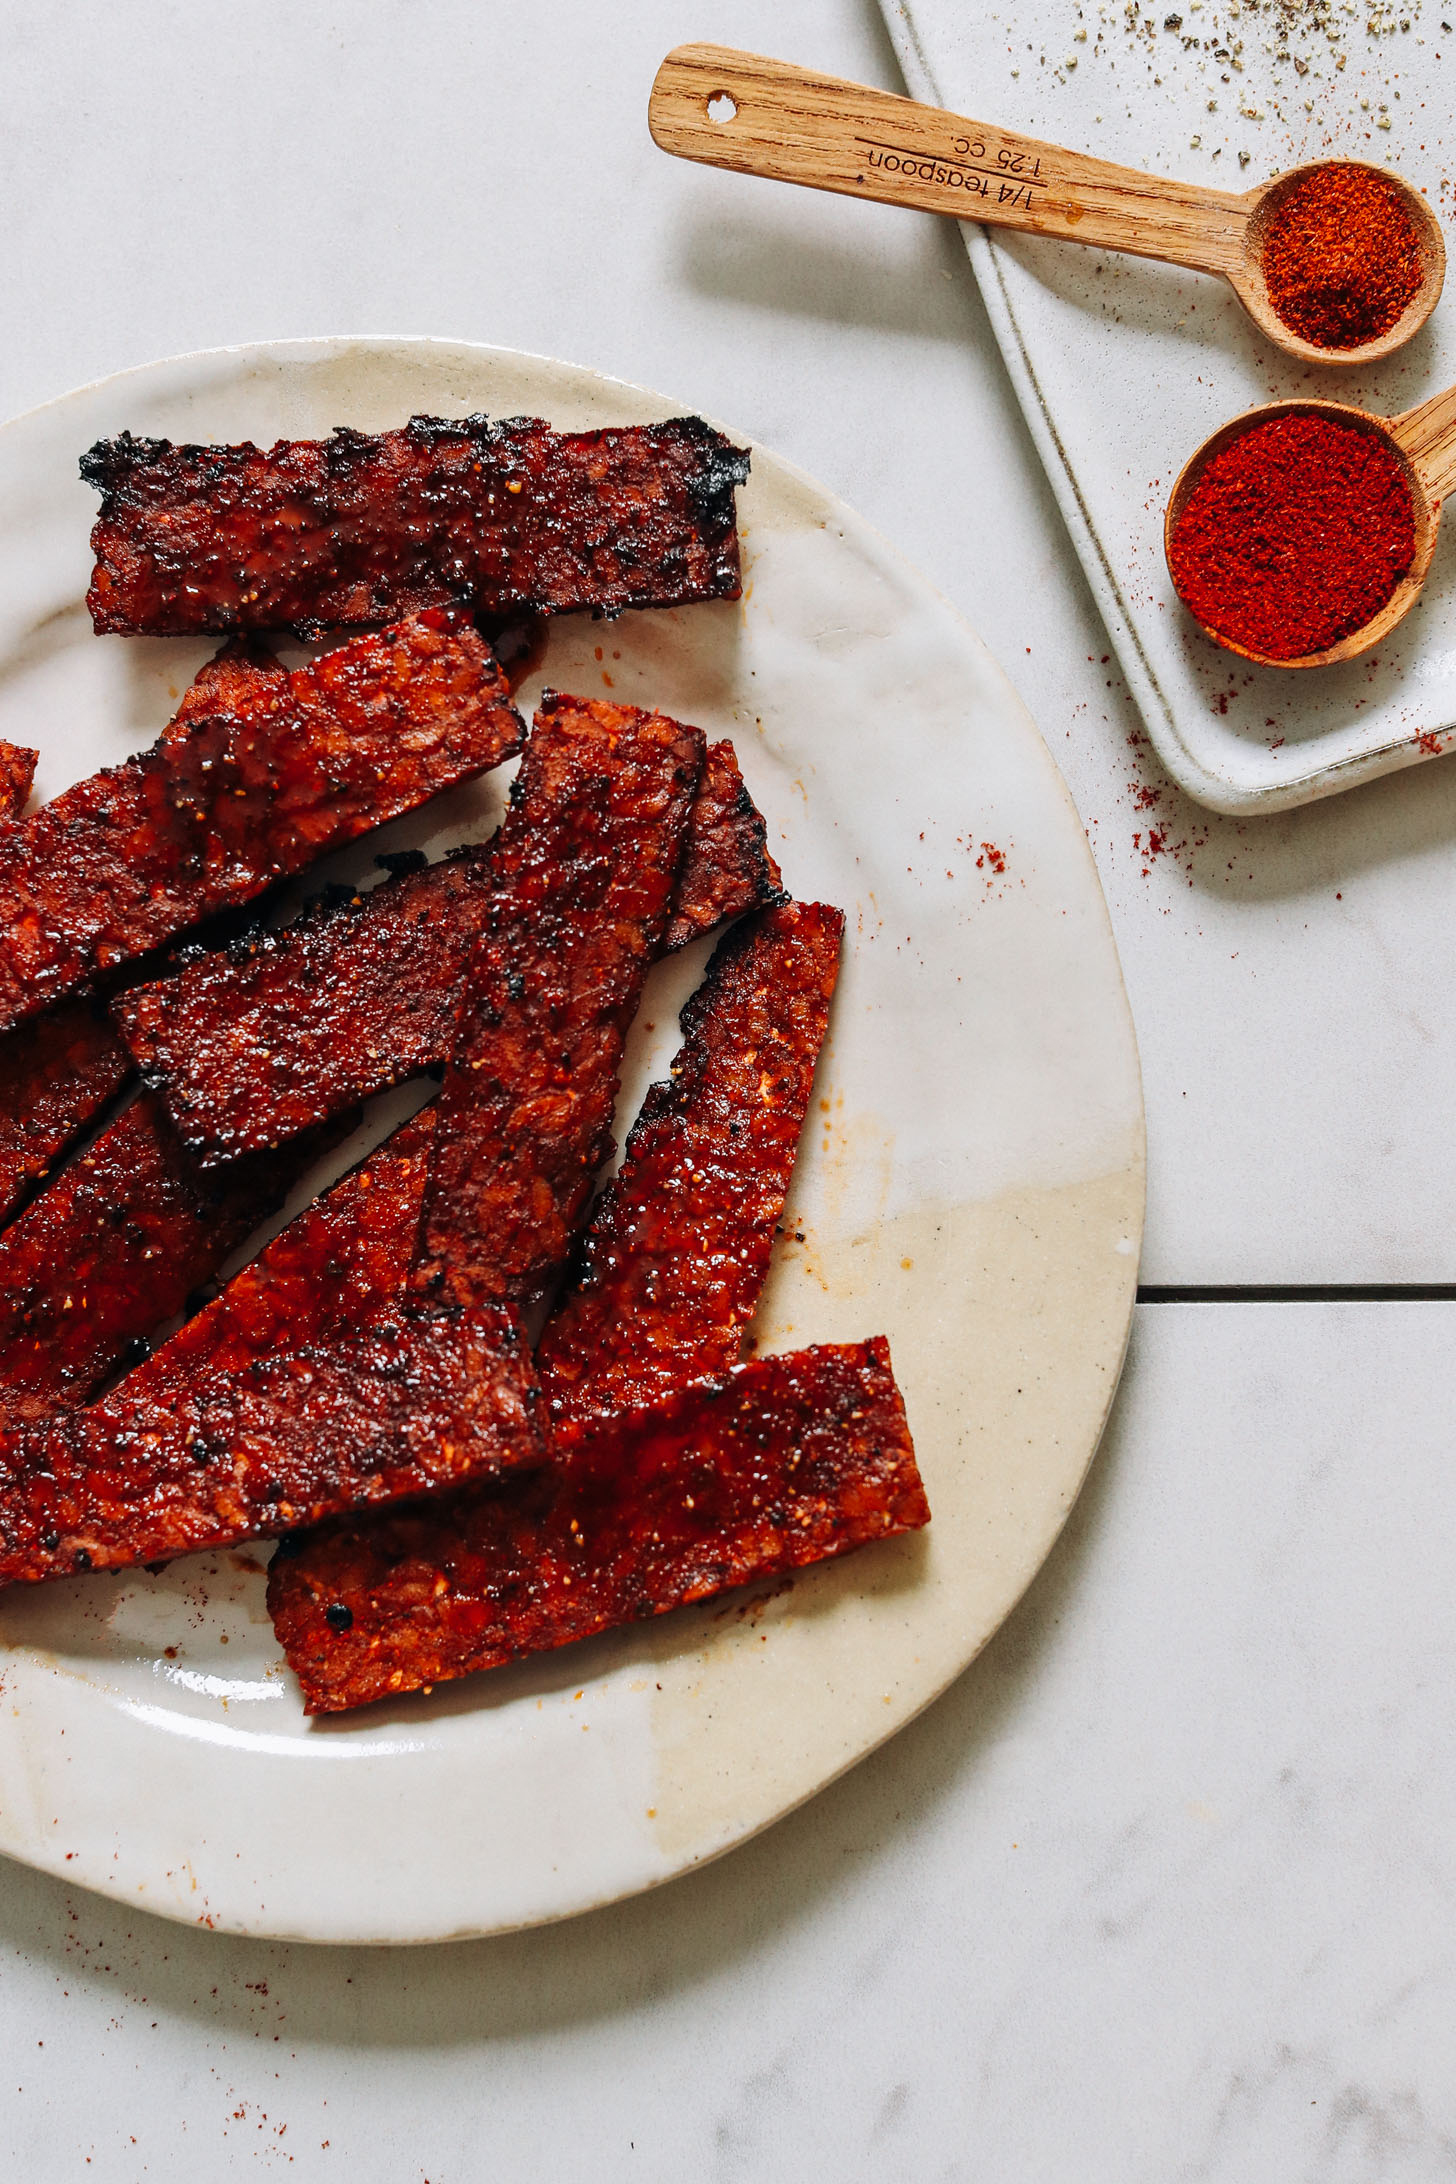 Spices next to a plate of vegan tempeh bacon slices